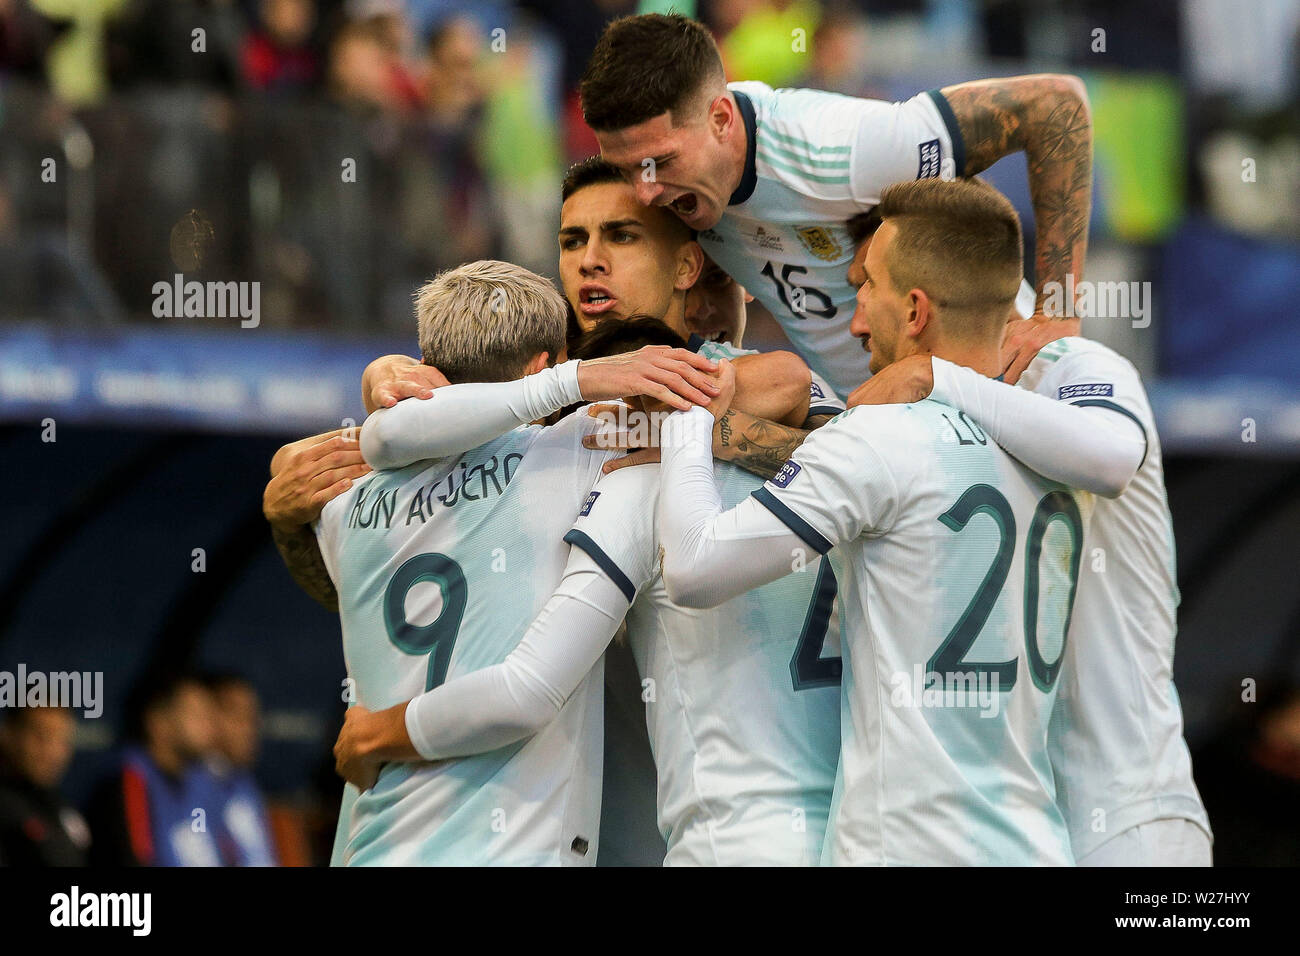 6th July 2019, Arena Corinthians Stadium, Sao Paulo, Brazil; Copa America international football, 3rd-4th playoff final, Argentina versus Chile; Sergio Agüero of Argentina celebrates his goal for 1-0 in the 12th minute with team mates - Stock Image